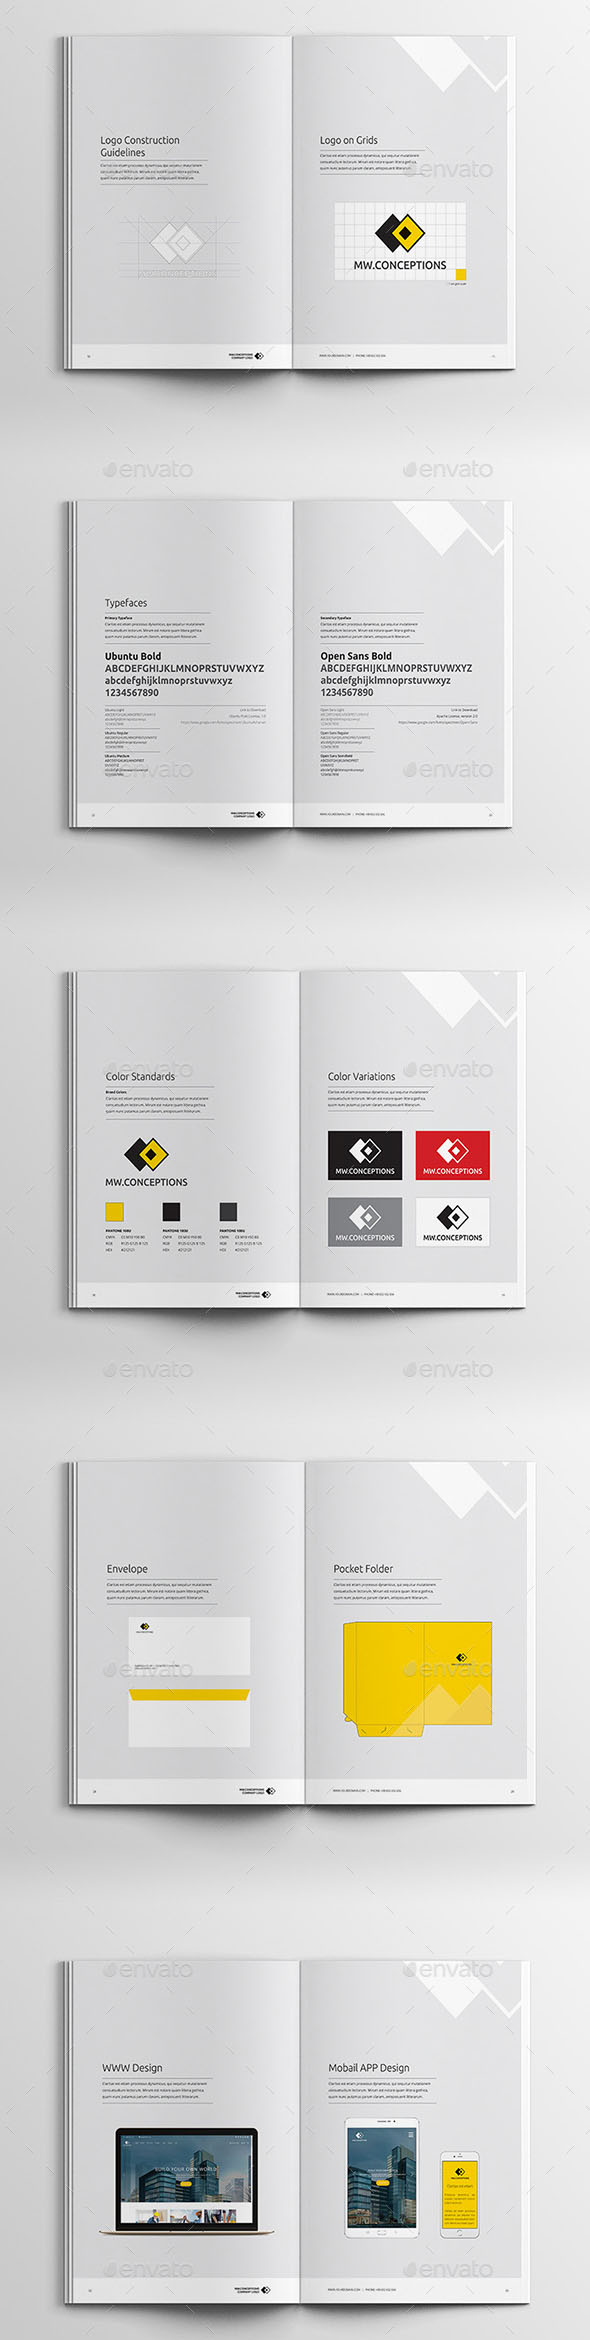 40+ Best Brand Guideline Templates (PSD, InDesign) | Premium Download